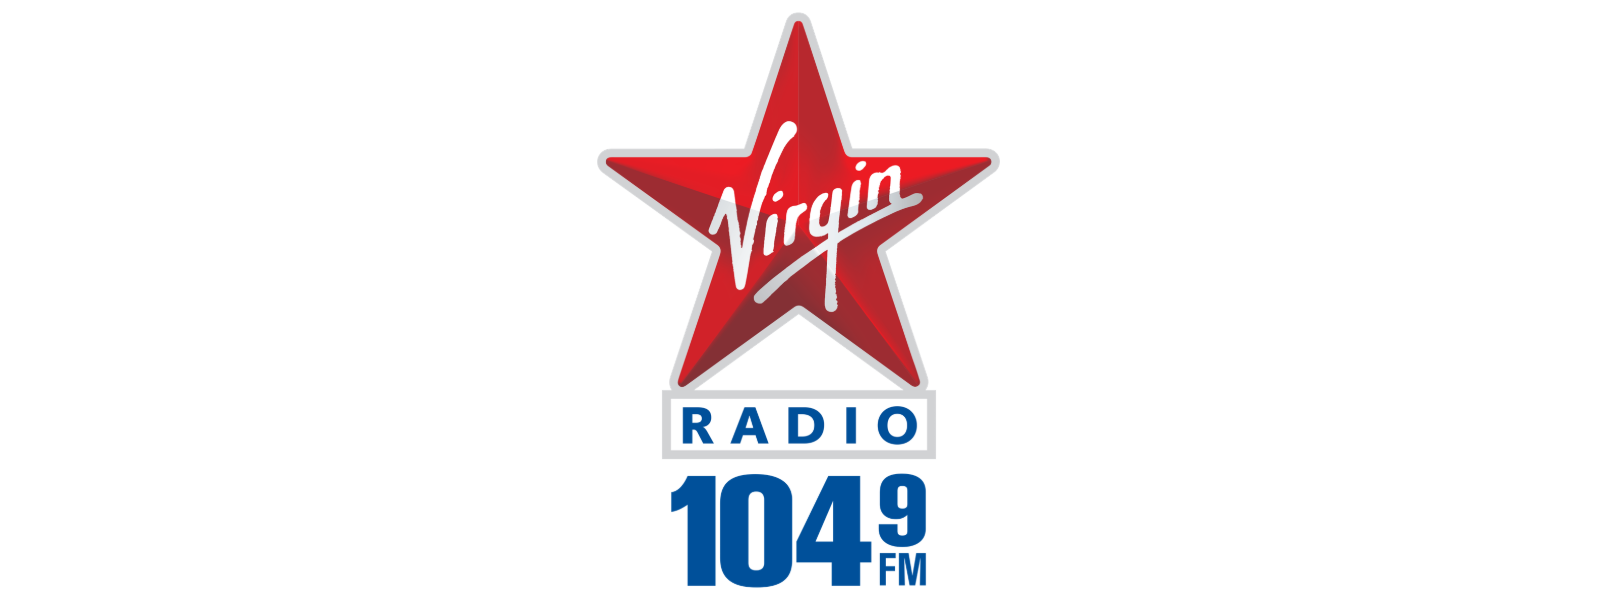 Virgin Radio.png